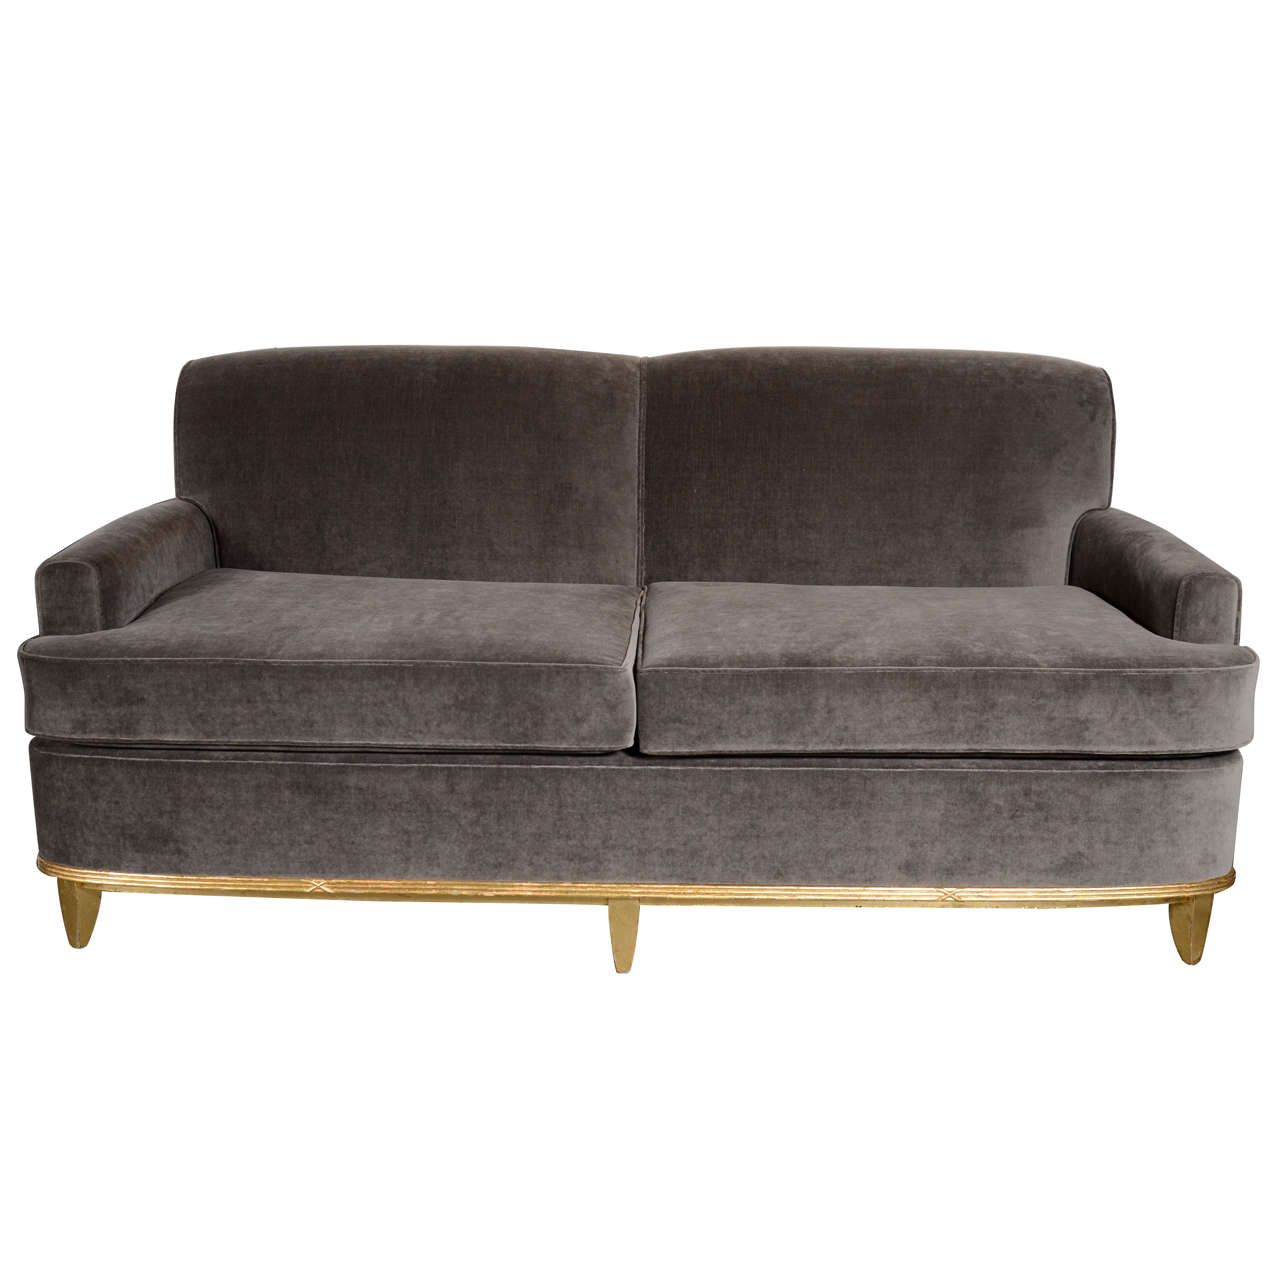 art deco normandy sofa in grey mohair and gilt detailing at 1stdibs. Black Bedroom Furniture Sets. Home Design Ideas